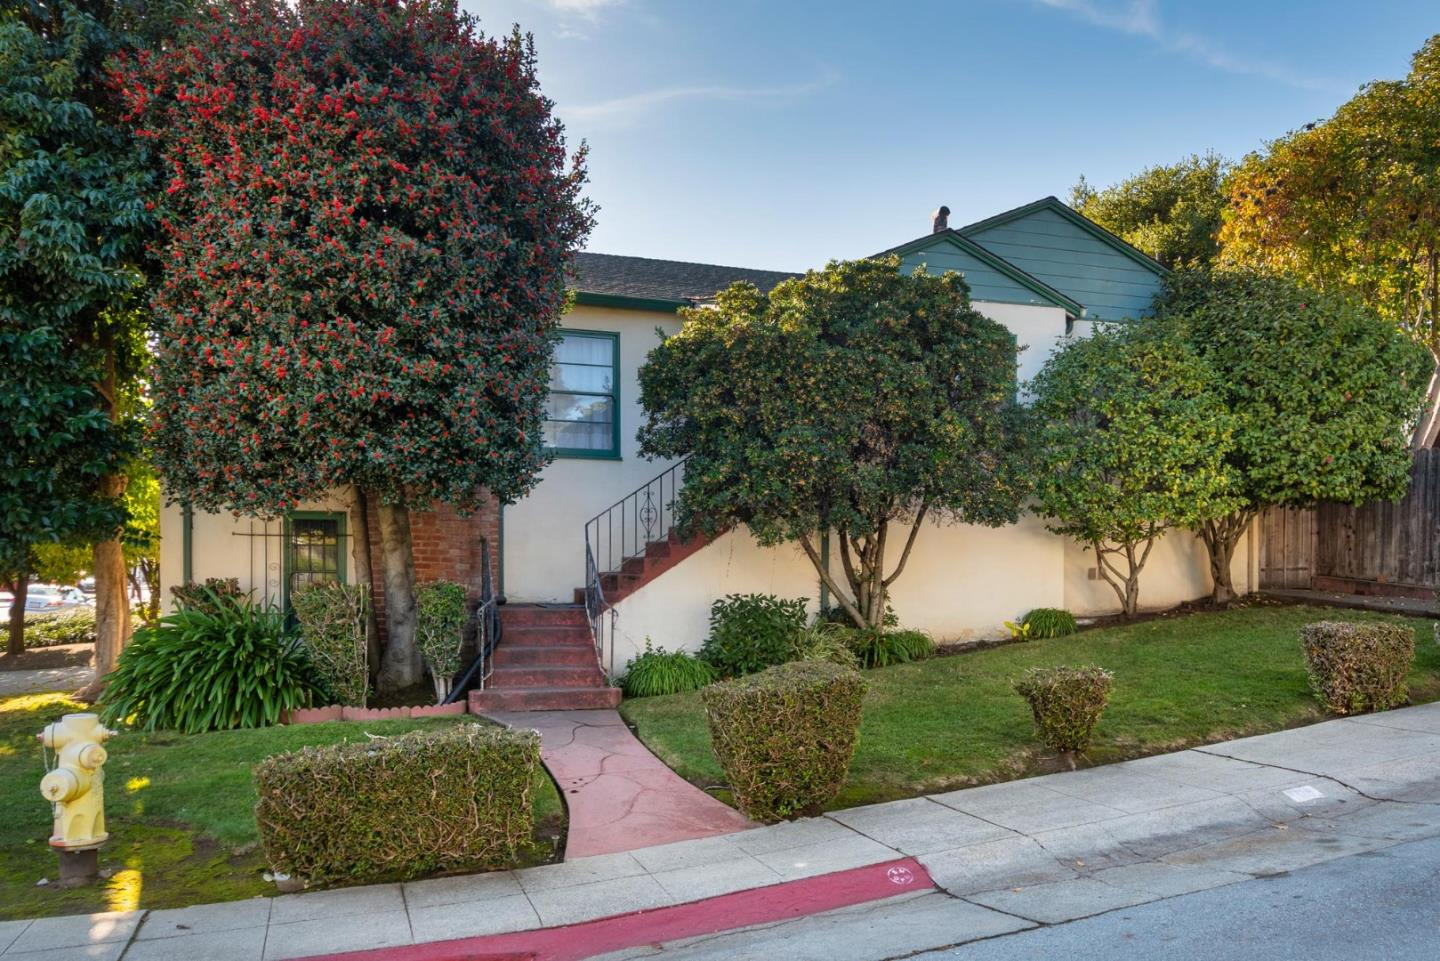 I am excited to fix you up with this fine 3-bedroom, 1.5 bath corner lot home within walking distance to two wonderful downtowns: San Mateo and Burlingame. In his own words: Ive got great qualities: I have a bonus room in my 658 sqft 2-car garage that makes for a great man cave or ADU + 3 bedrooms, 1.5 bath, living and dining room, dine-in kitchen, fireplace, laundry room w/washer & dryer and large private back yard for outdoor fun with fruit trees and dog pen!  I am on a 5280 sqft corner lot so you will always have your space.  I may be a little rough around the edges but nothing someone with good carpentry hands can't fix. I am the perfectly situated home!  Less than 5 minutes to Coyote Point which is a special place on the water and to live so close is a real location perk. Close proximity to many high-tech employers in downtown and at Bay Meadows, e.g, Survey Monkey. Centrally located for all your desired destinations and commute directions. I am ready to be fixed up!